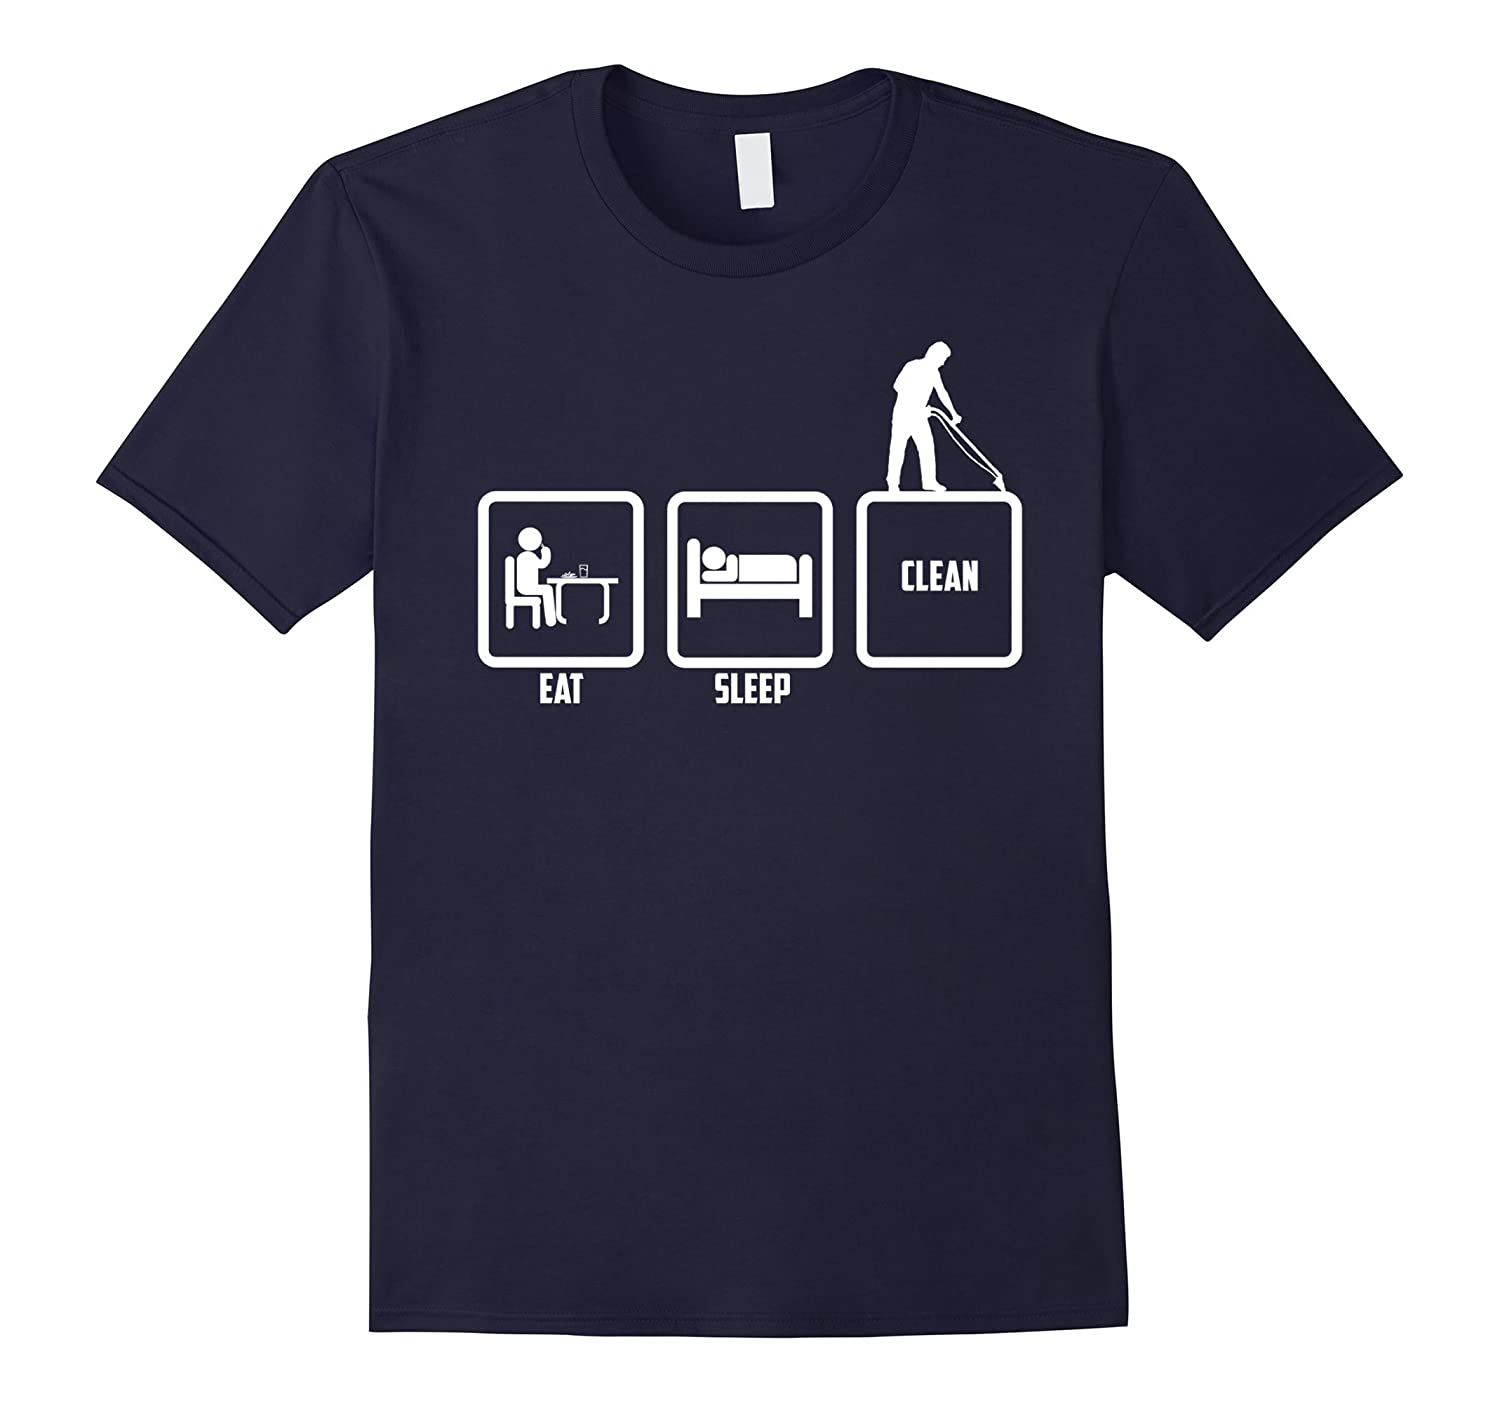 Cool Funny Graphic Design Eat Sleep And Cleaner T-shirt-TD